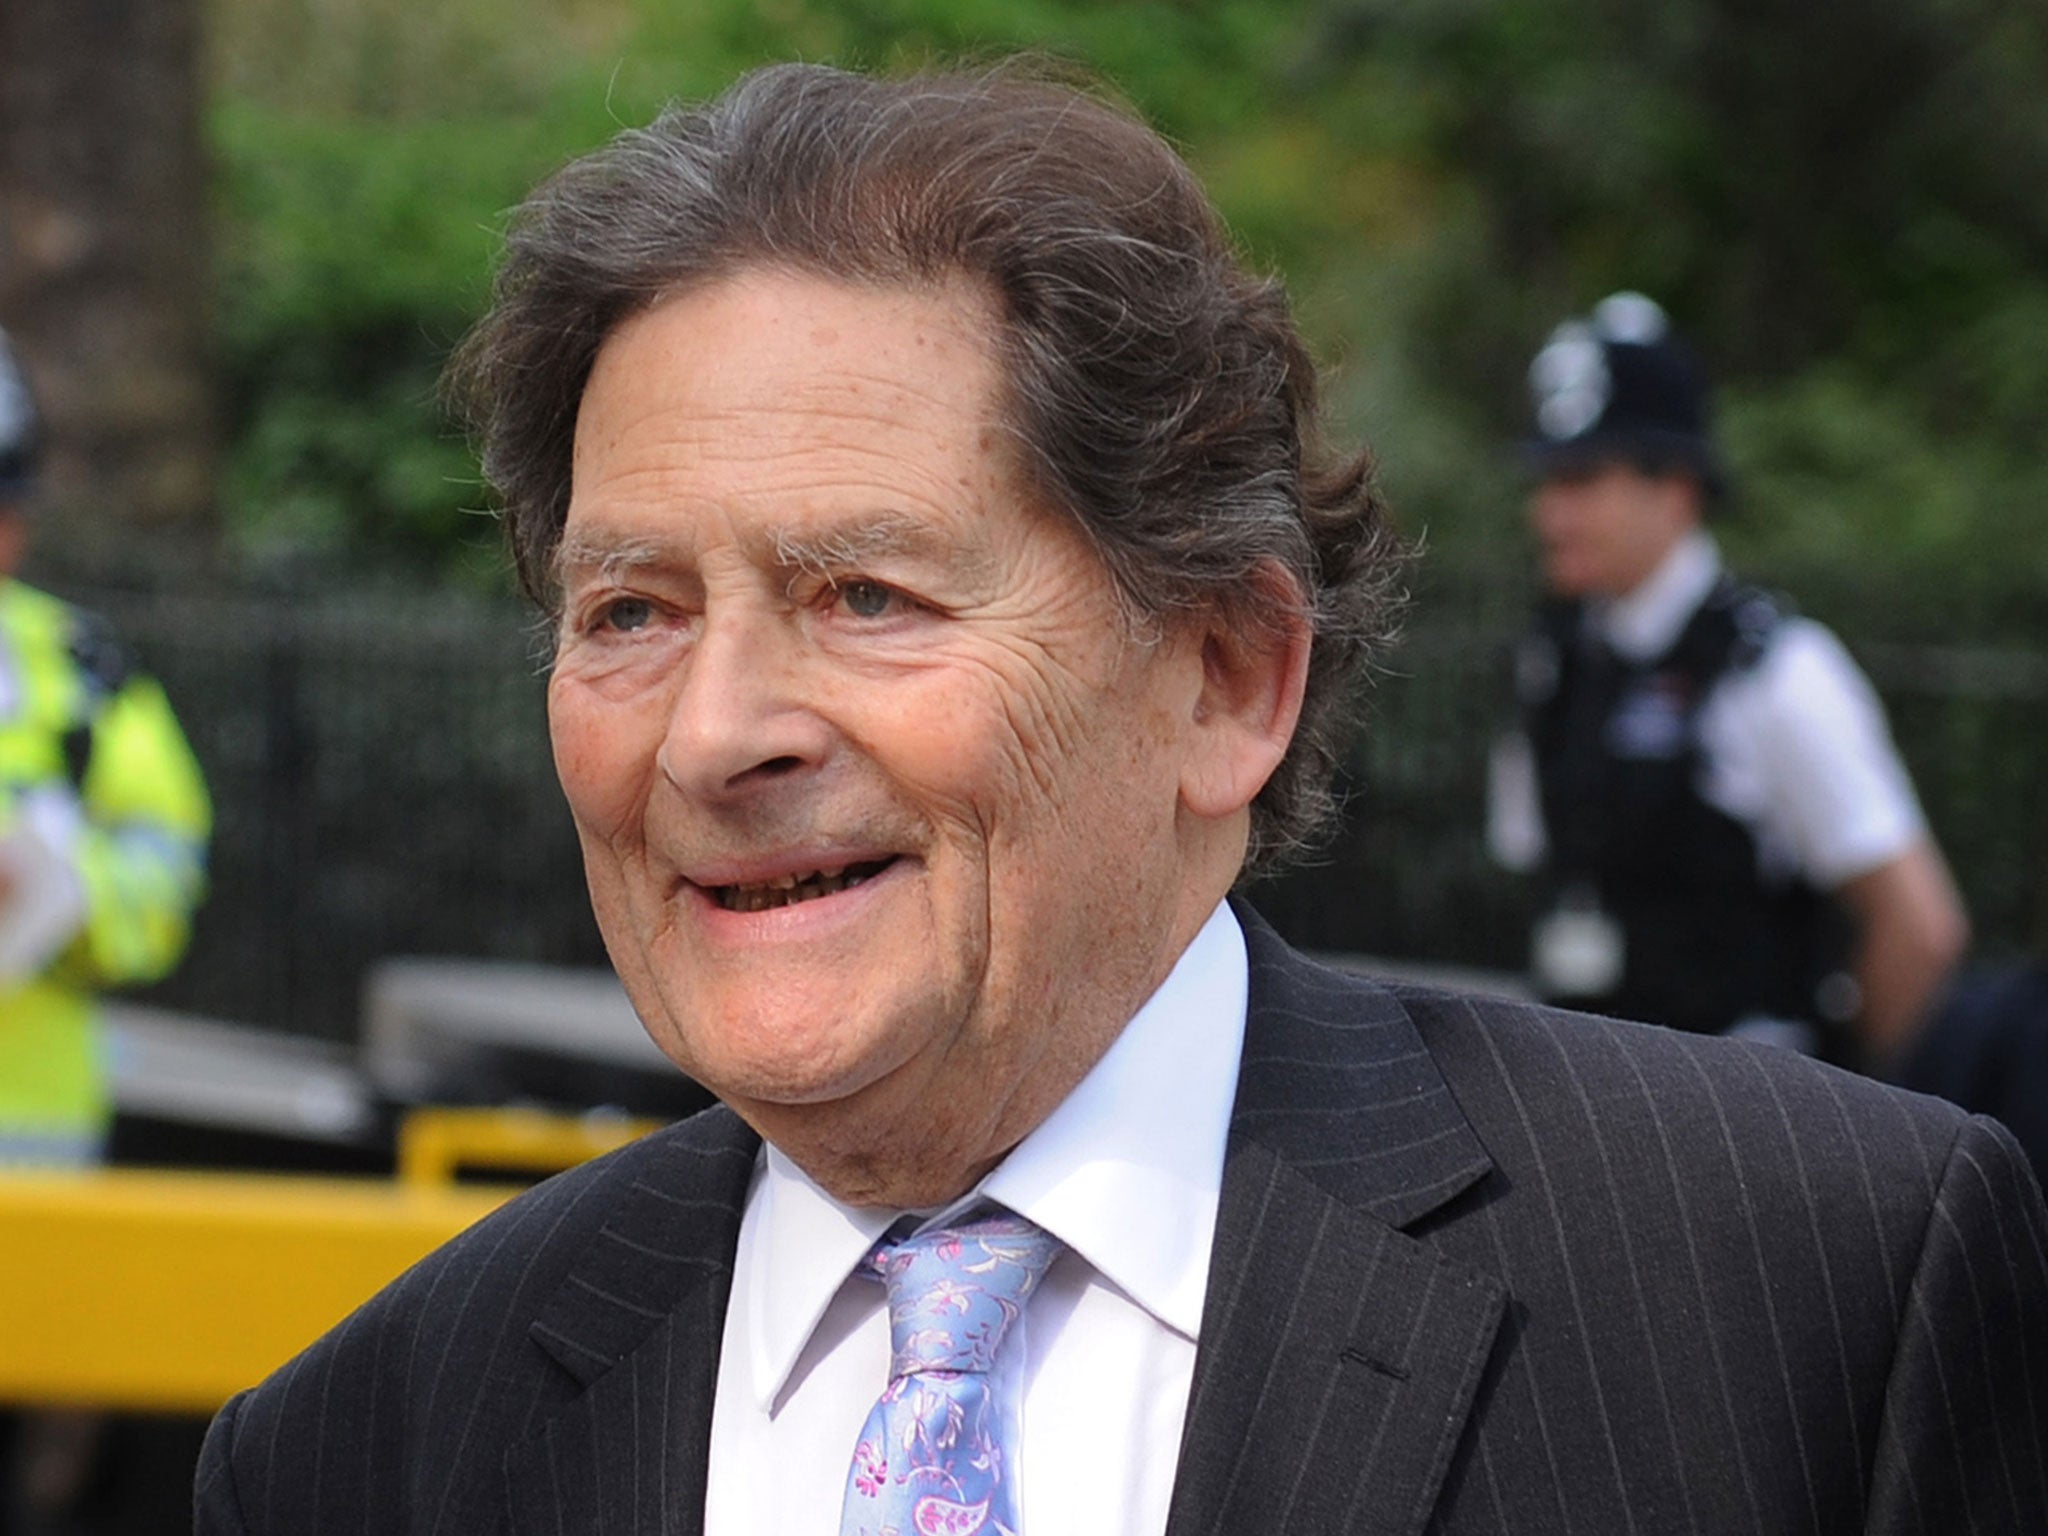 Britain's leading climate change sceptic Nigel Lawson says global warming is real